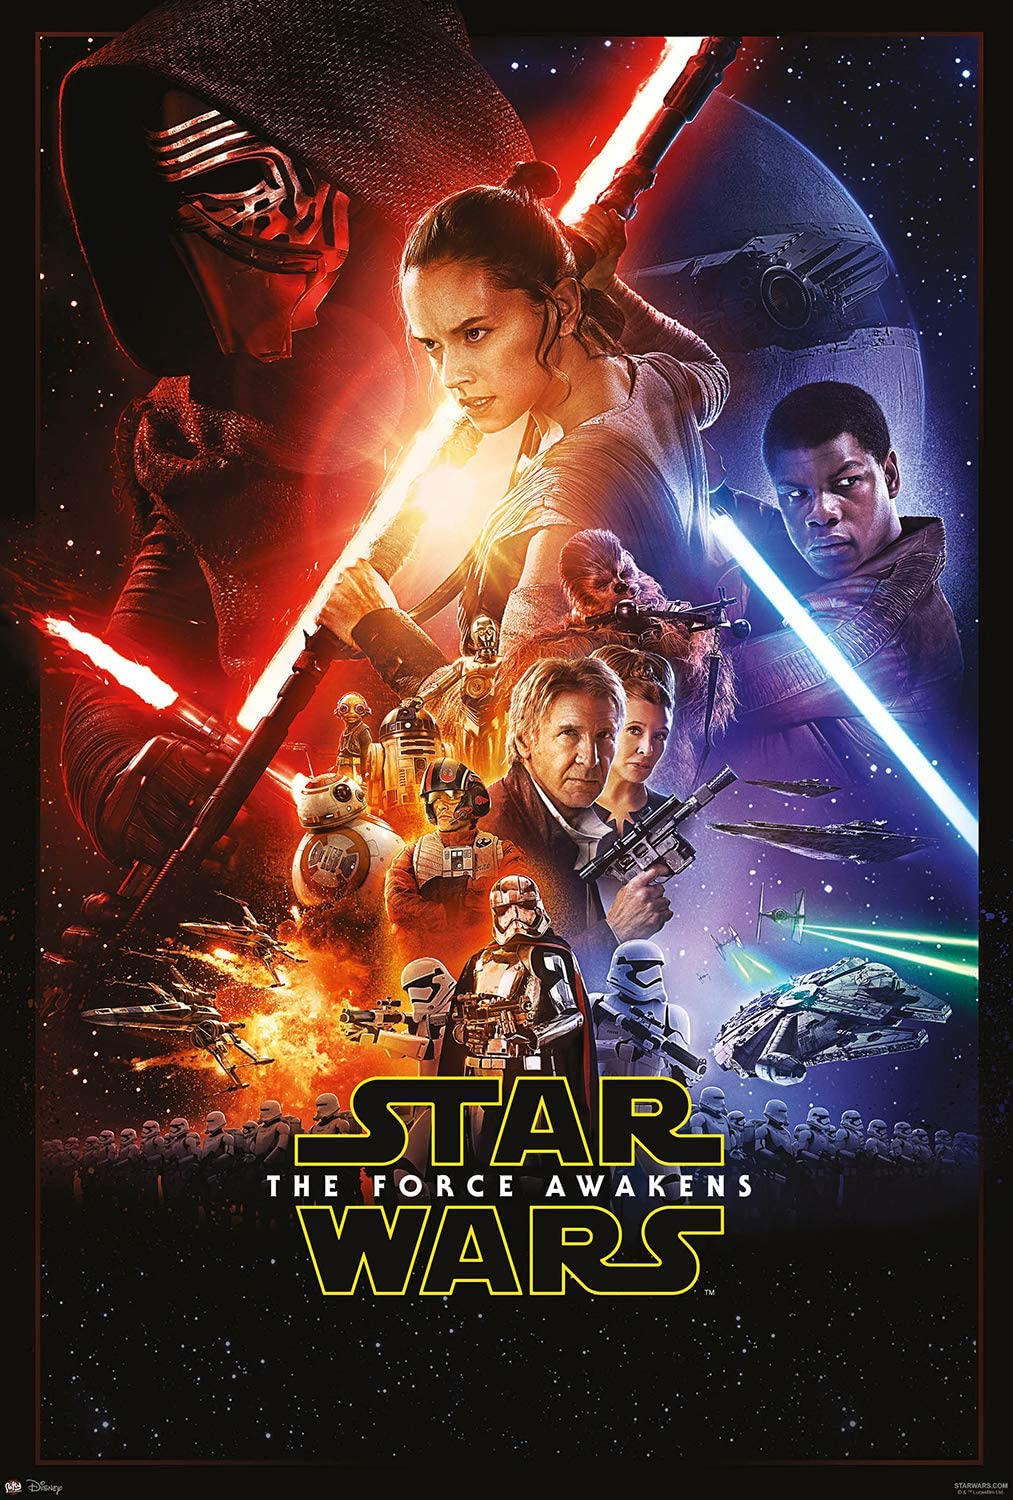 Amazon.com: Star Wars: Episode VII - The Force Awakens - Movie ...